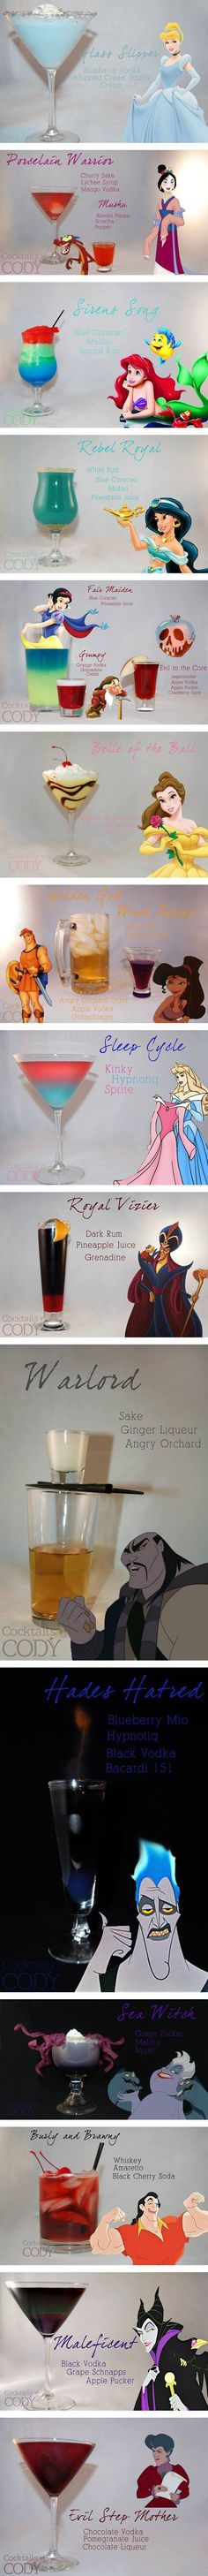 Disney Princess-Themed Cocktails, yes! Shatz Eggers Cody of Cocktails by Cody has mixed up a collection of cocktails inspired by Disney Princesses plus some Disney villains for good measure. Disney Cocktails, Cocktail Disney, Fun Cocktails, Party Drinks, Cocktail Drinks, Cocktail Recipes, Comida Disney, Alcohol Drink Recipes, Alcohol Shots